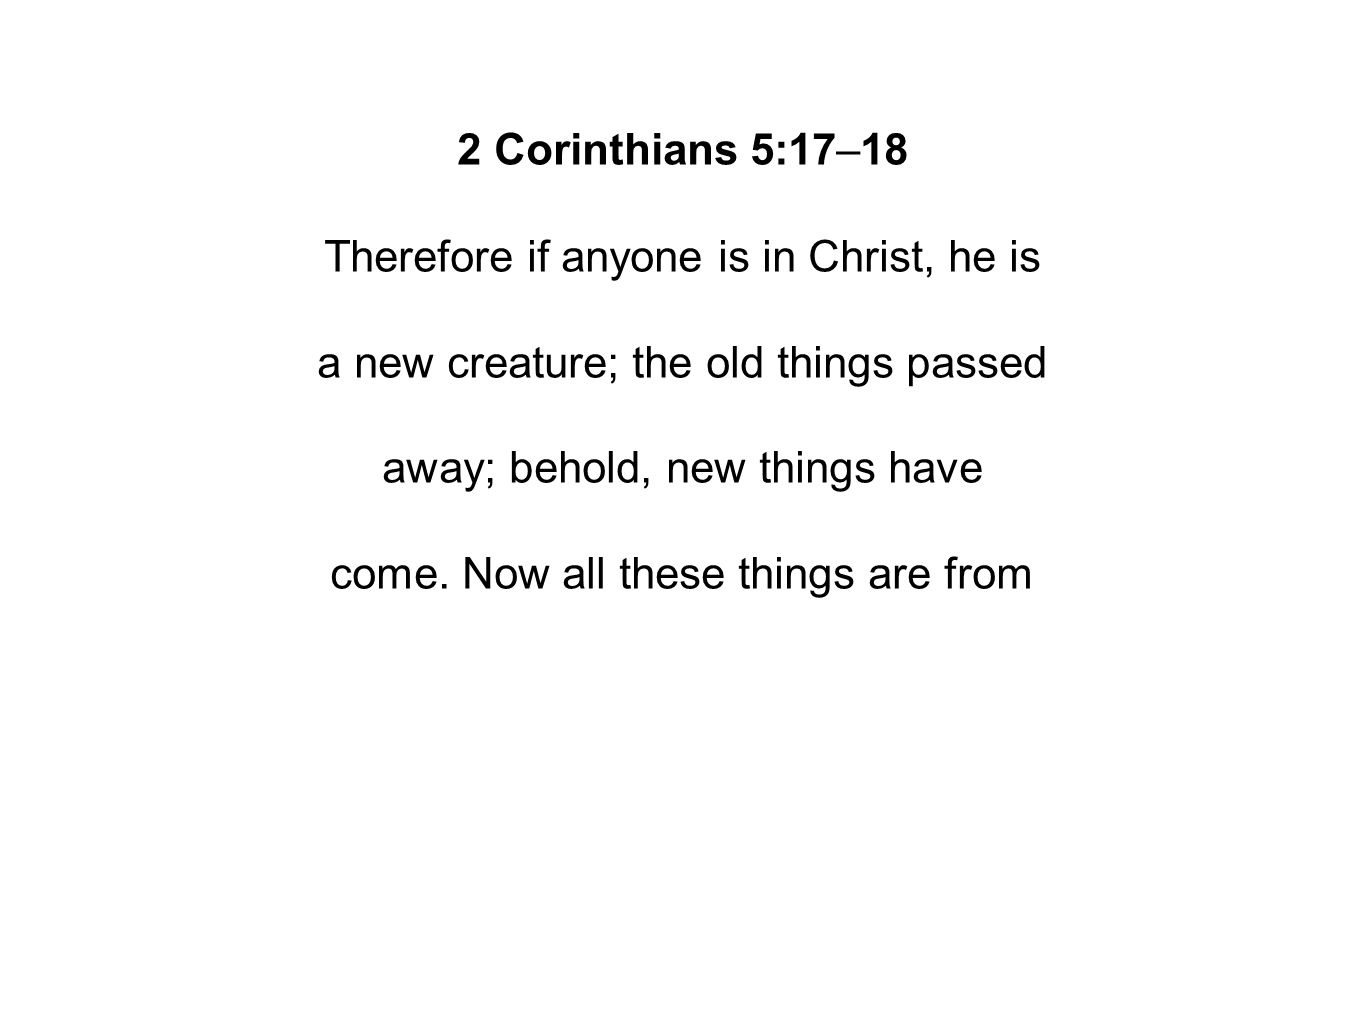 2 Corinthians 5:17–18 Therefore if anyone is in Christ, he is a new creature; the old things passed away; behold, new things have come.